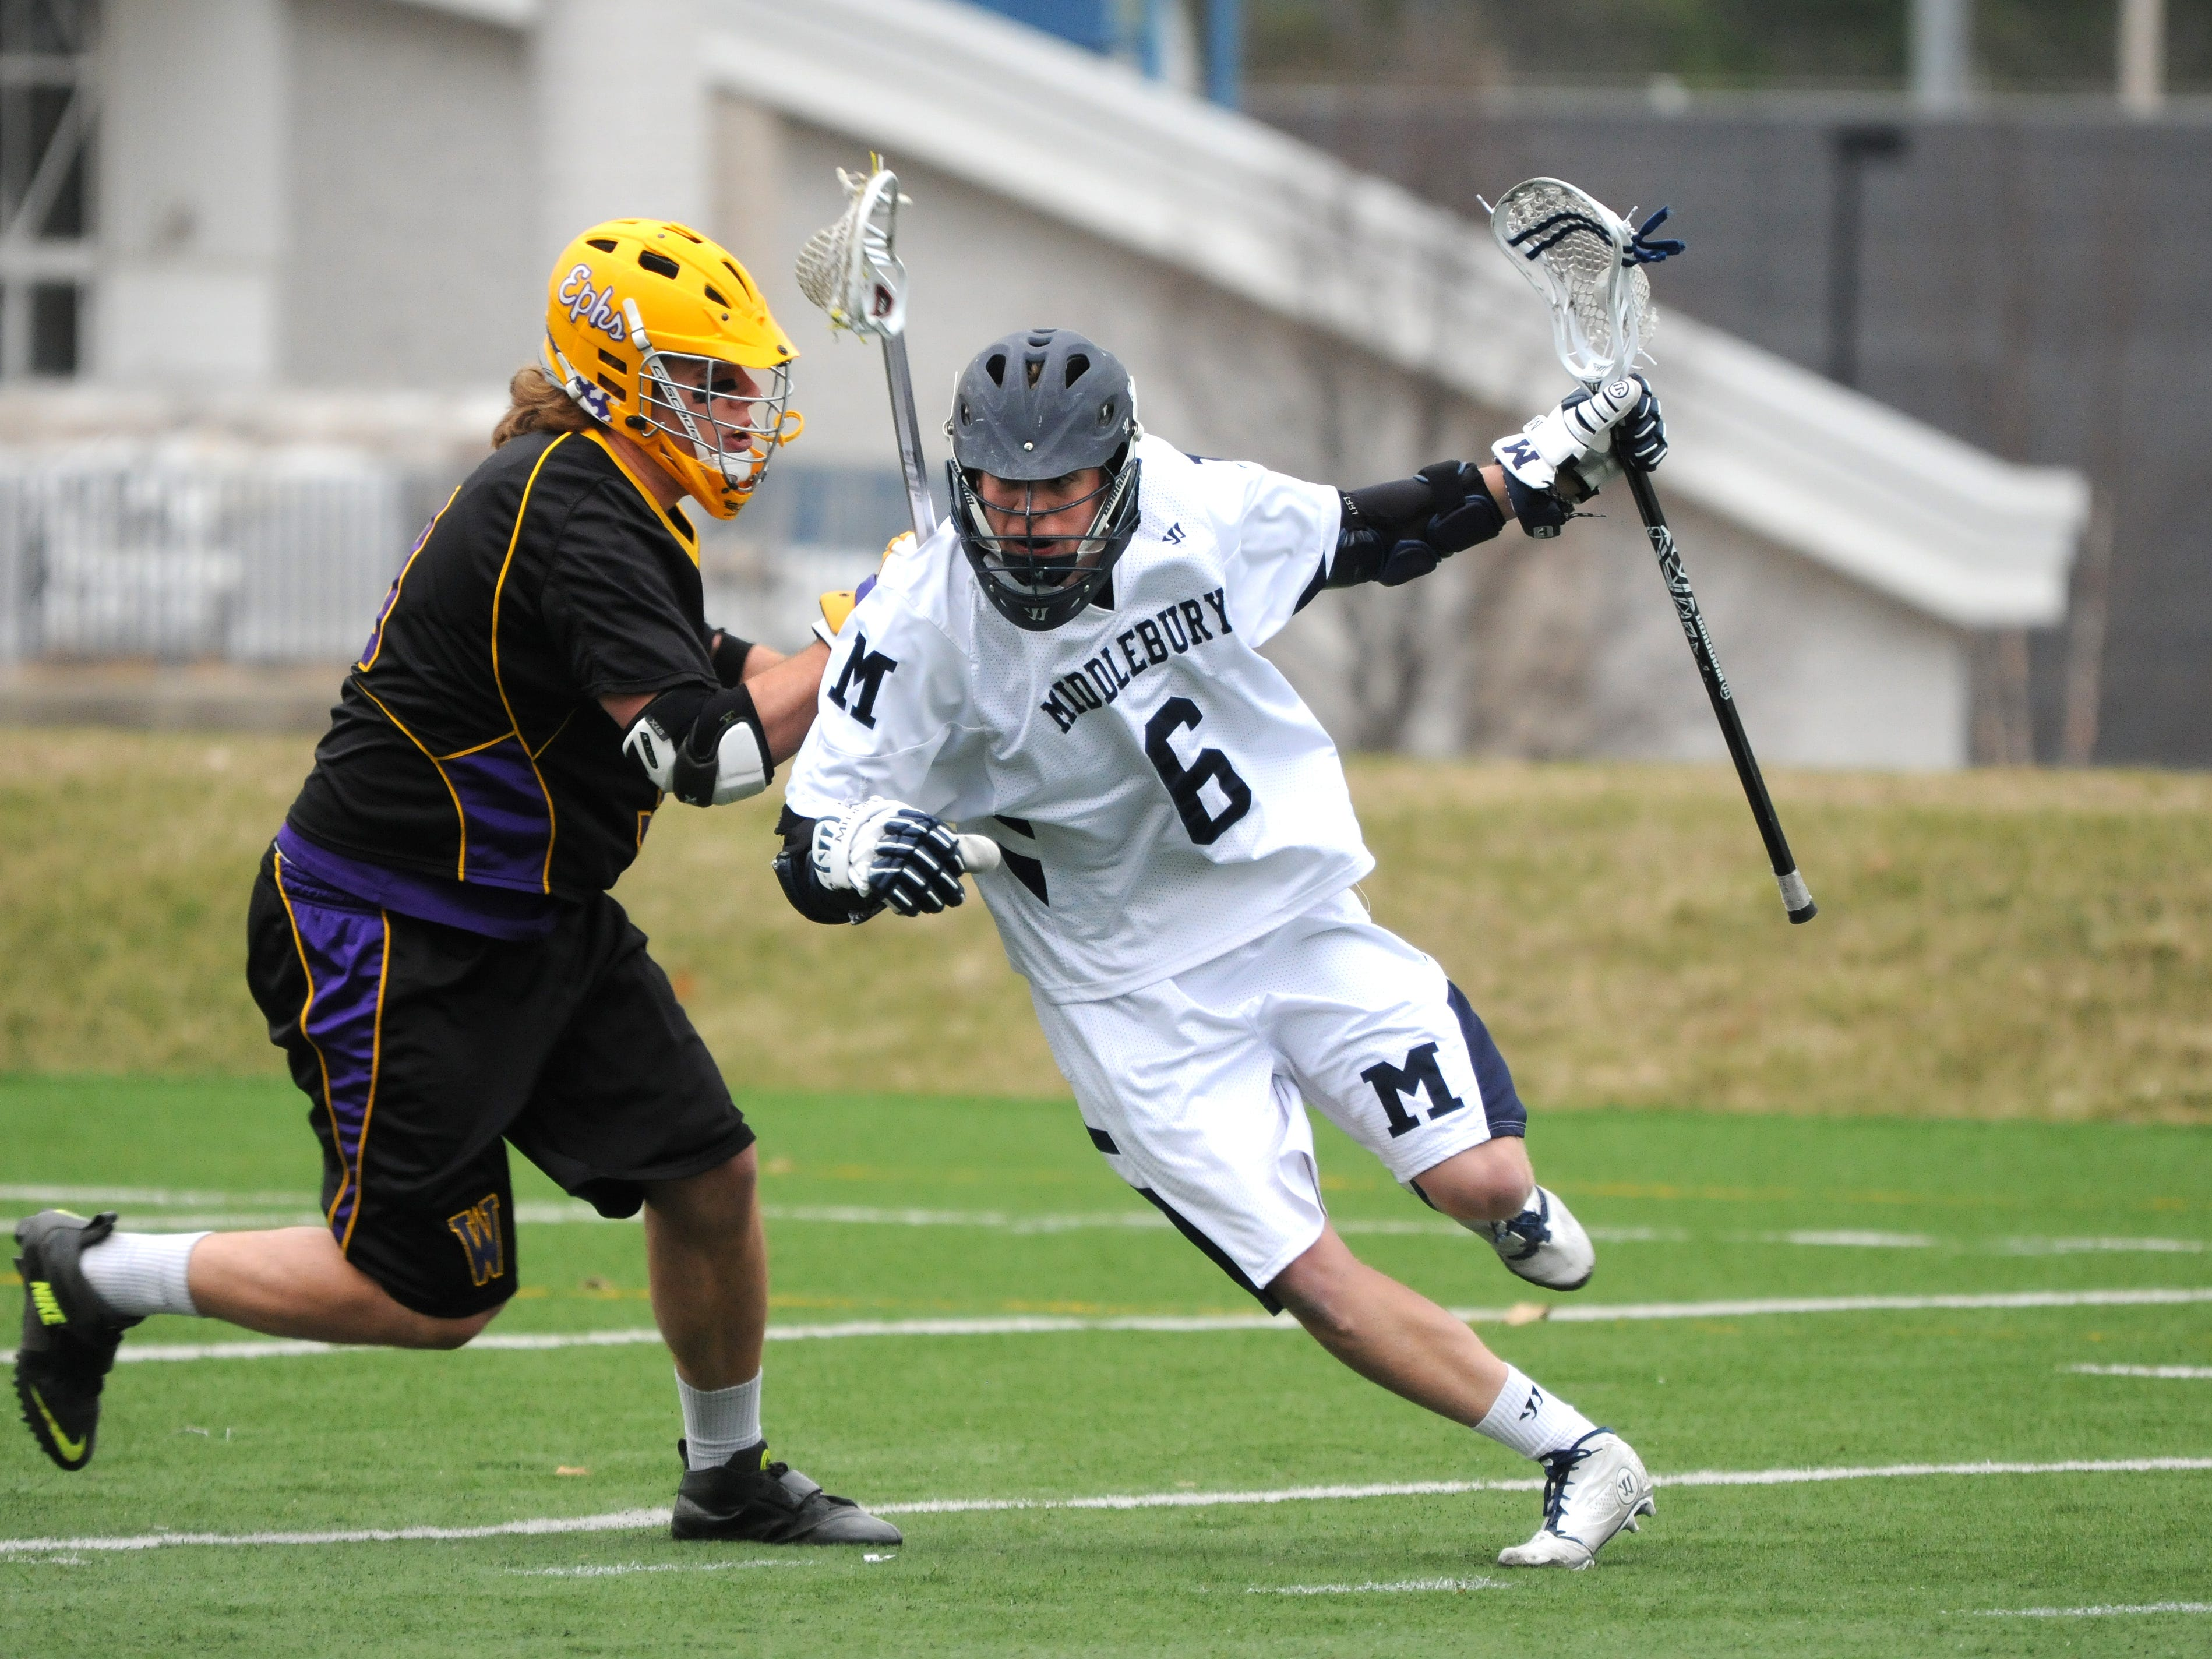 Middlebury junior attack Jon Broome, a Mountain Lakes graduate, scored his 100th career goal on Wednesday.